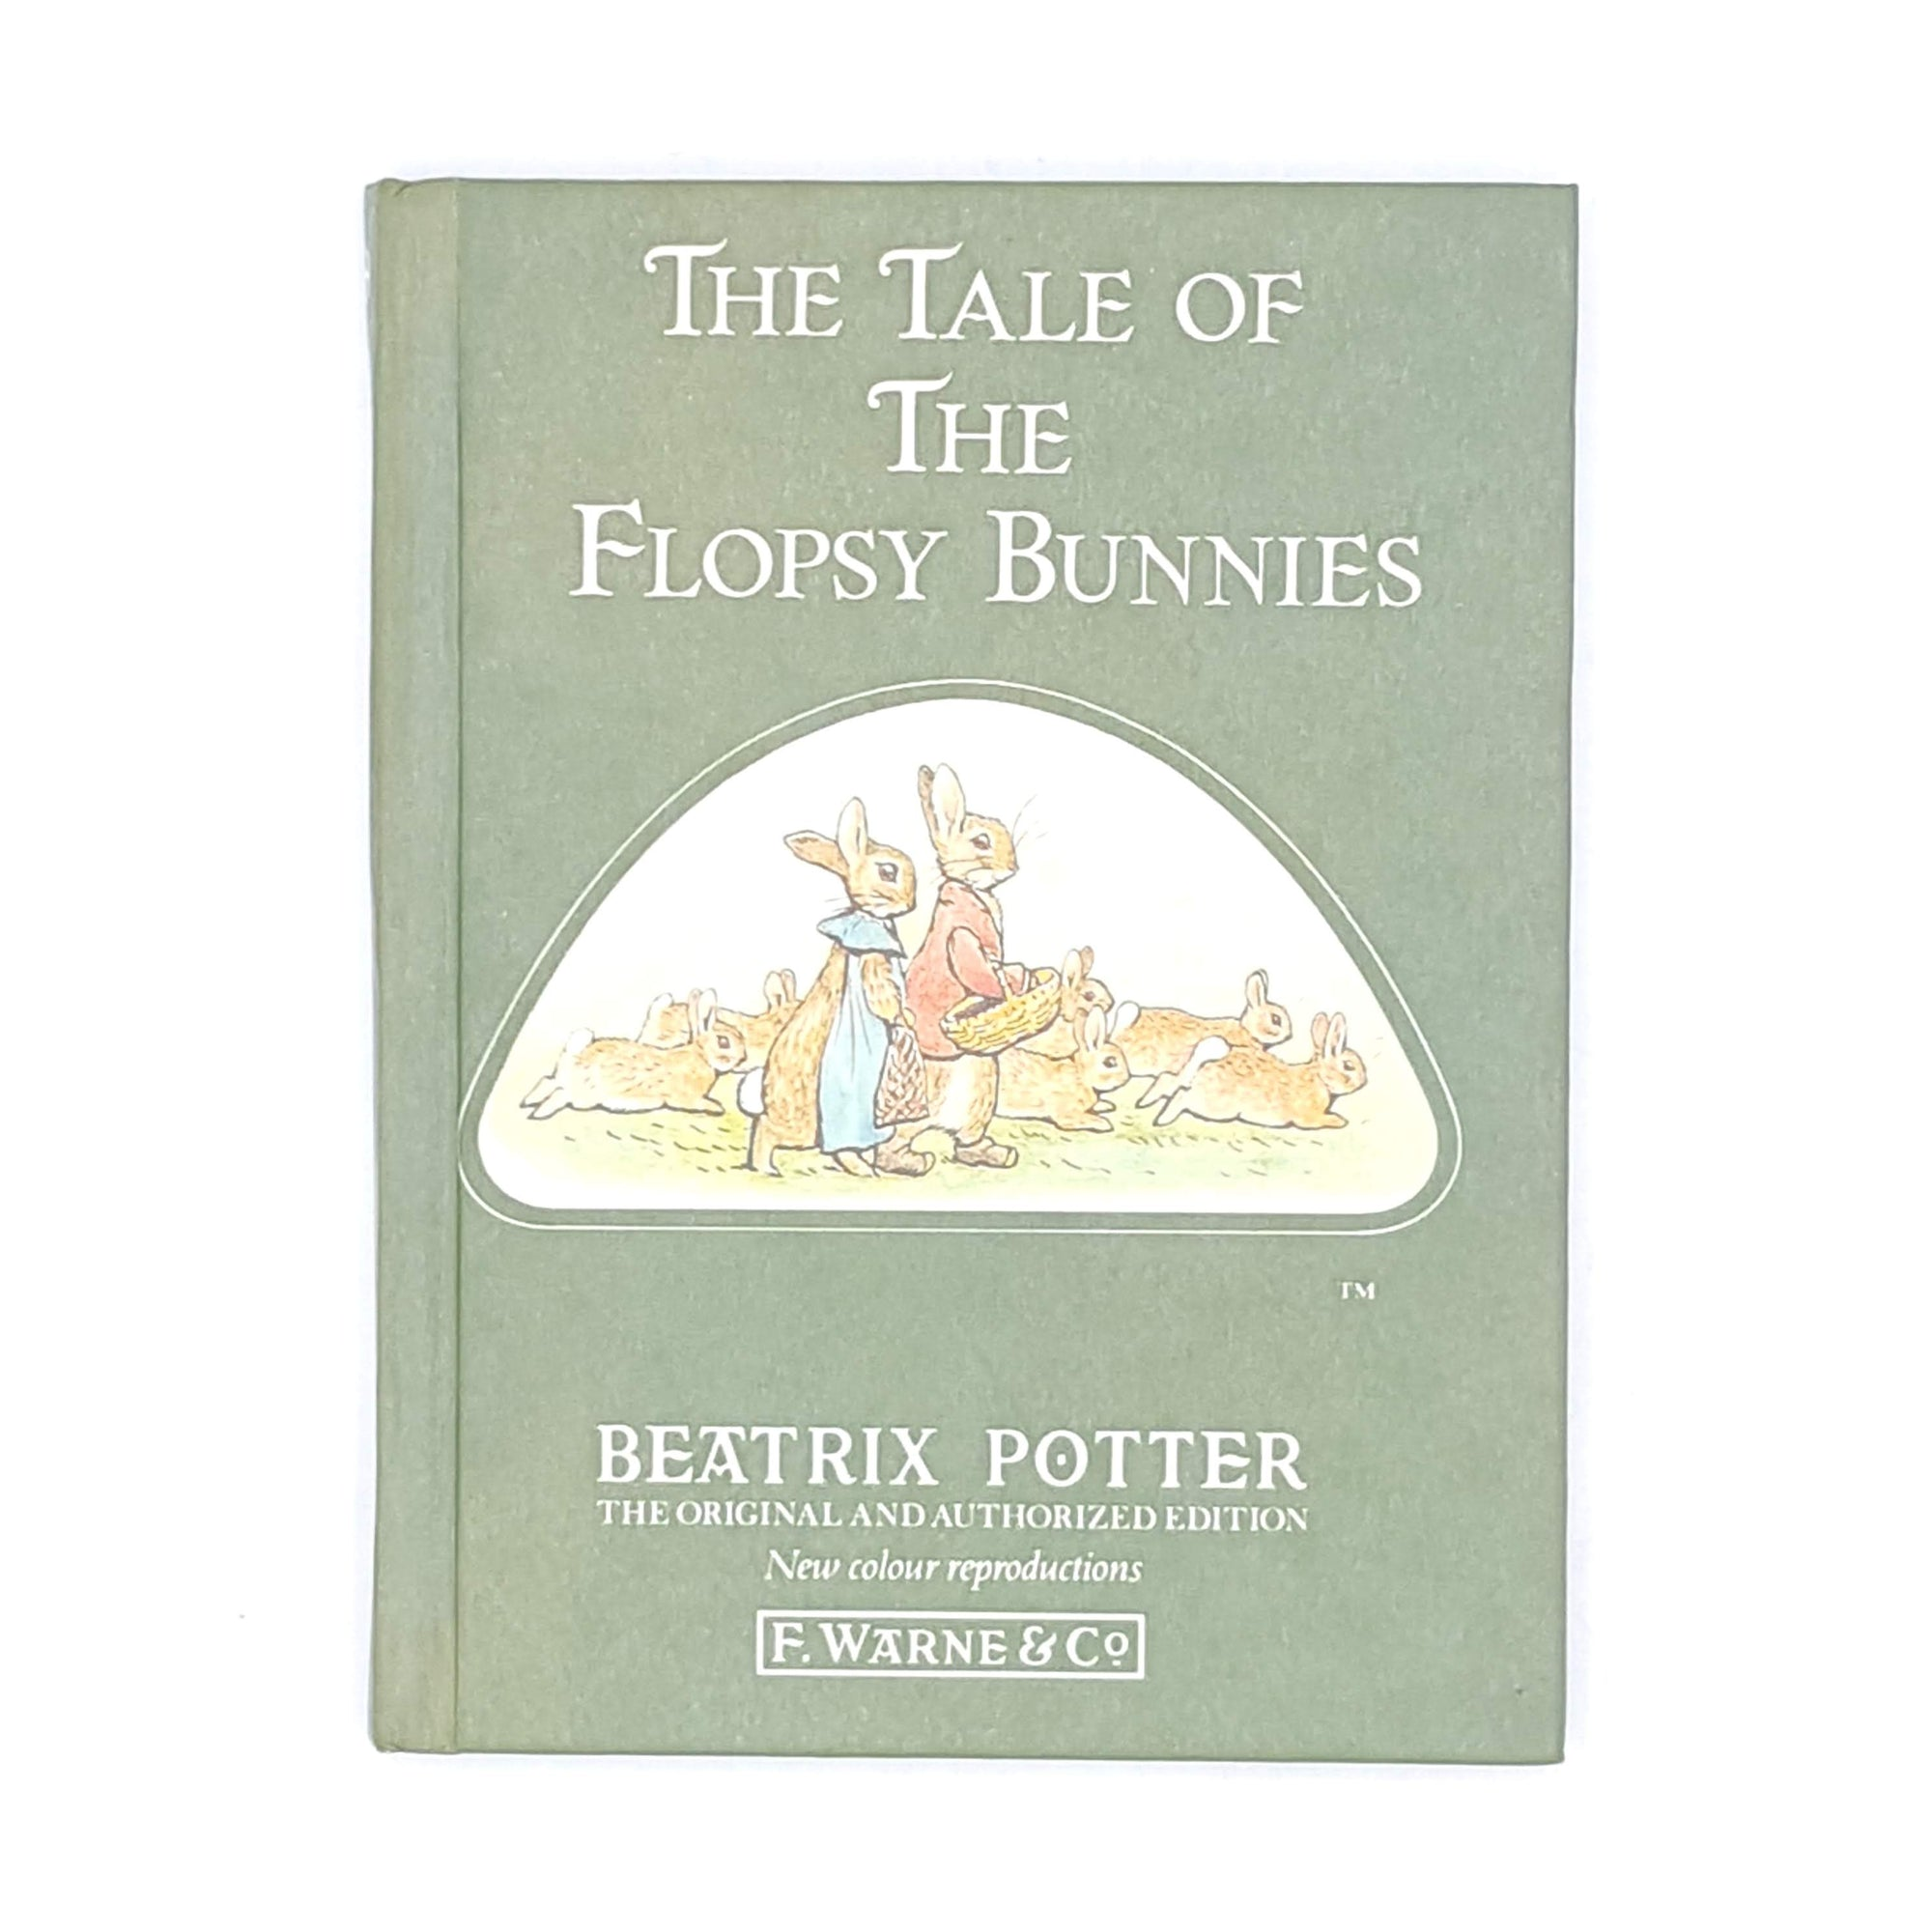 green-beatrix-potter-country-house-library-flopsy-bunnies-childrens-antique-classic-decorative-books-old-thrift-vintage-patterned-